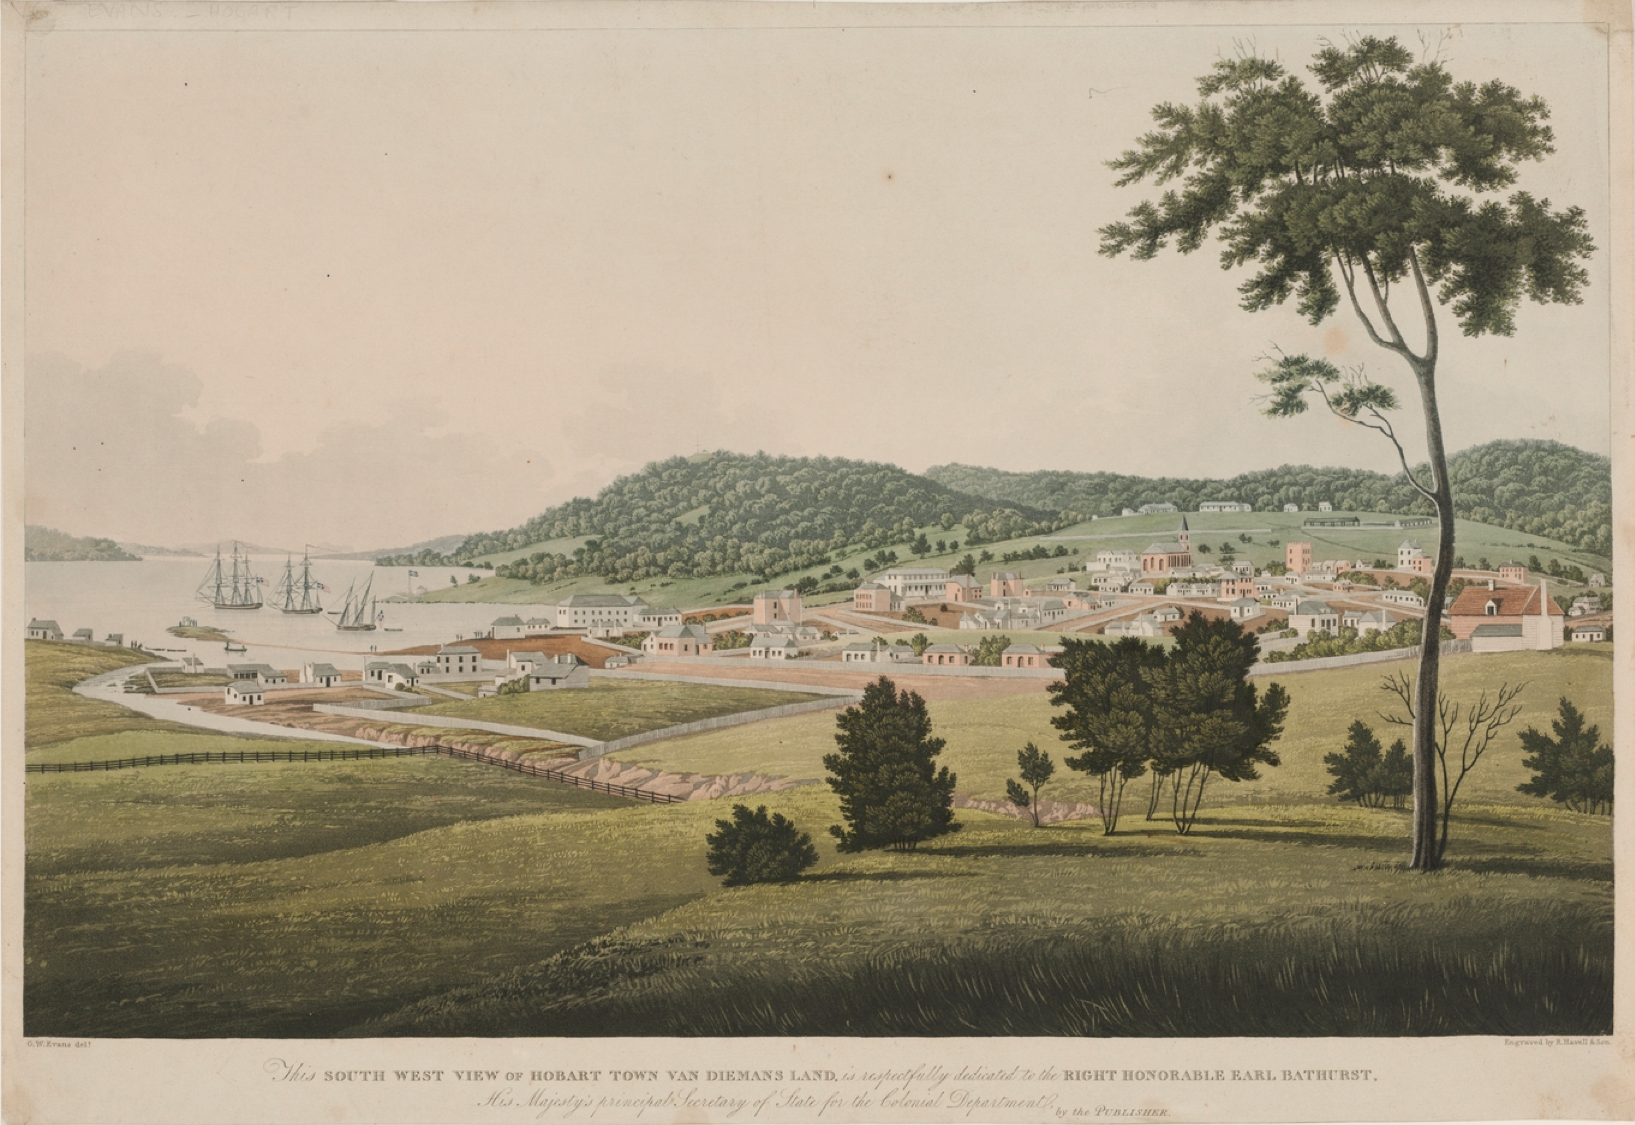 George William Evans, South-west View of Hobart Town, 1819, Van Diemen's Land, Tasmania, Sarah Moses, Tell the World I Died for Love, Died of Broken Heart, Moses Moses, Convicts, St. John's Cemetery Project, Old Parramattans, St. John's Cemetery, Parramatta